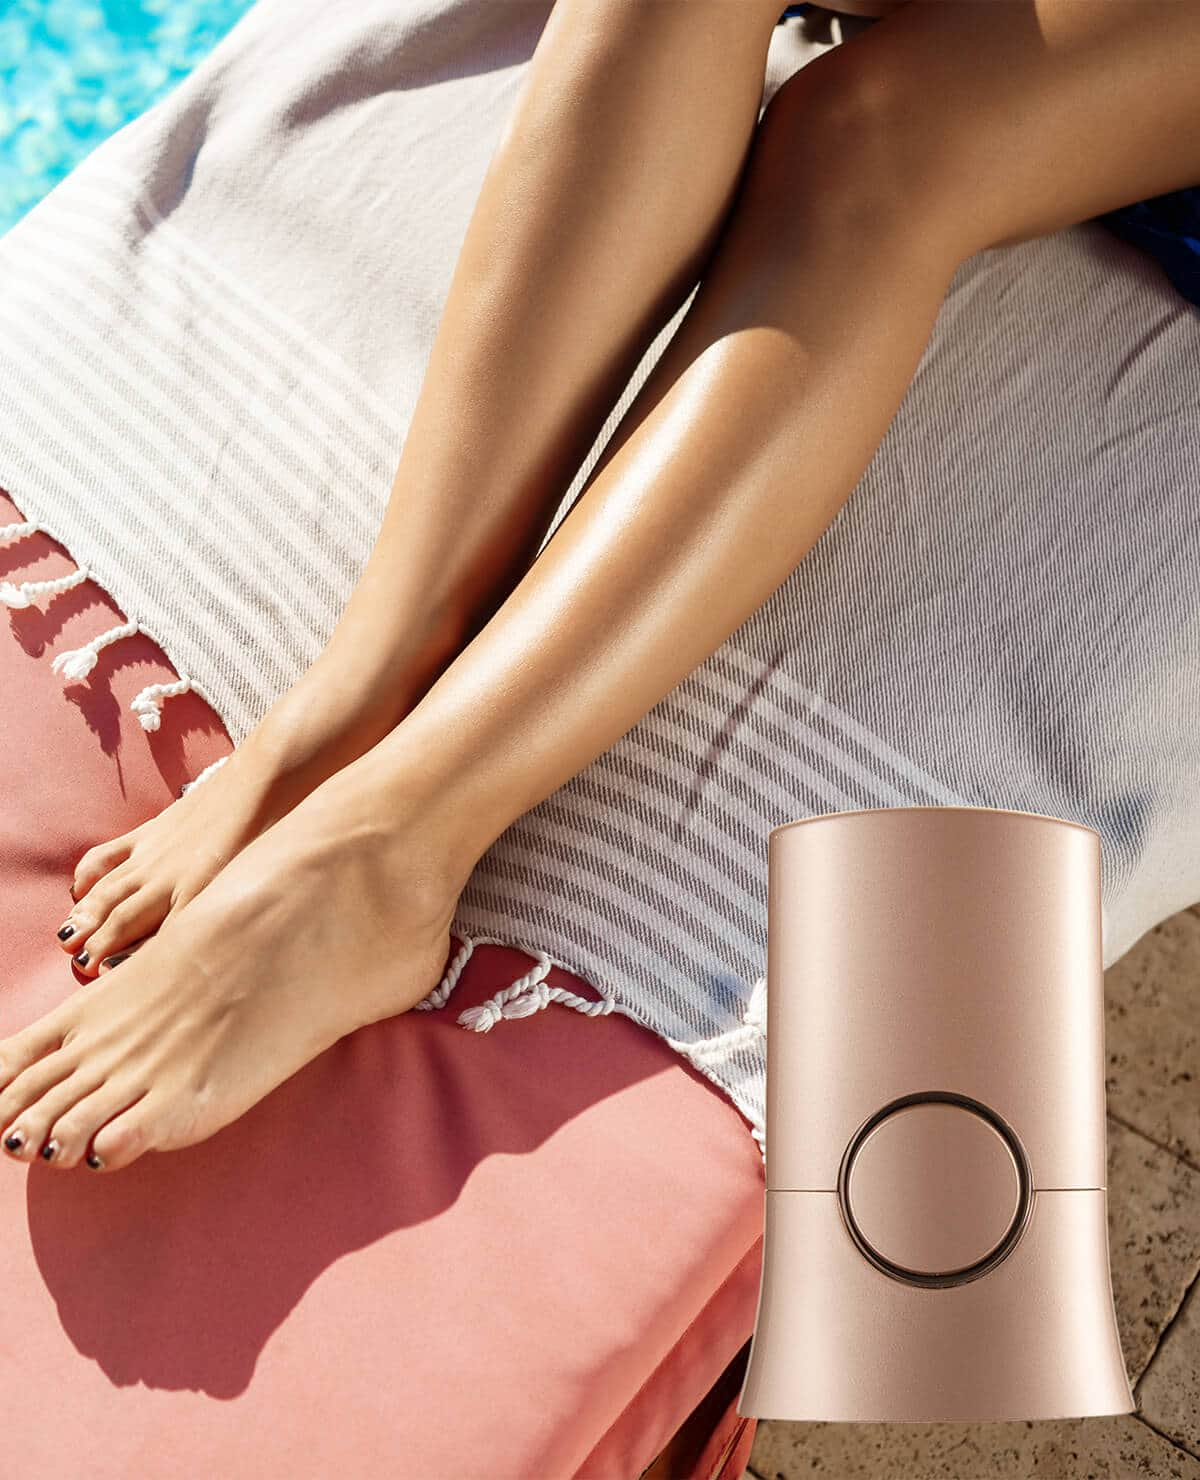 Sensitive Laser Hair Removal Home Device | CrazyBee